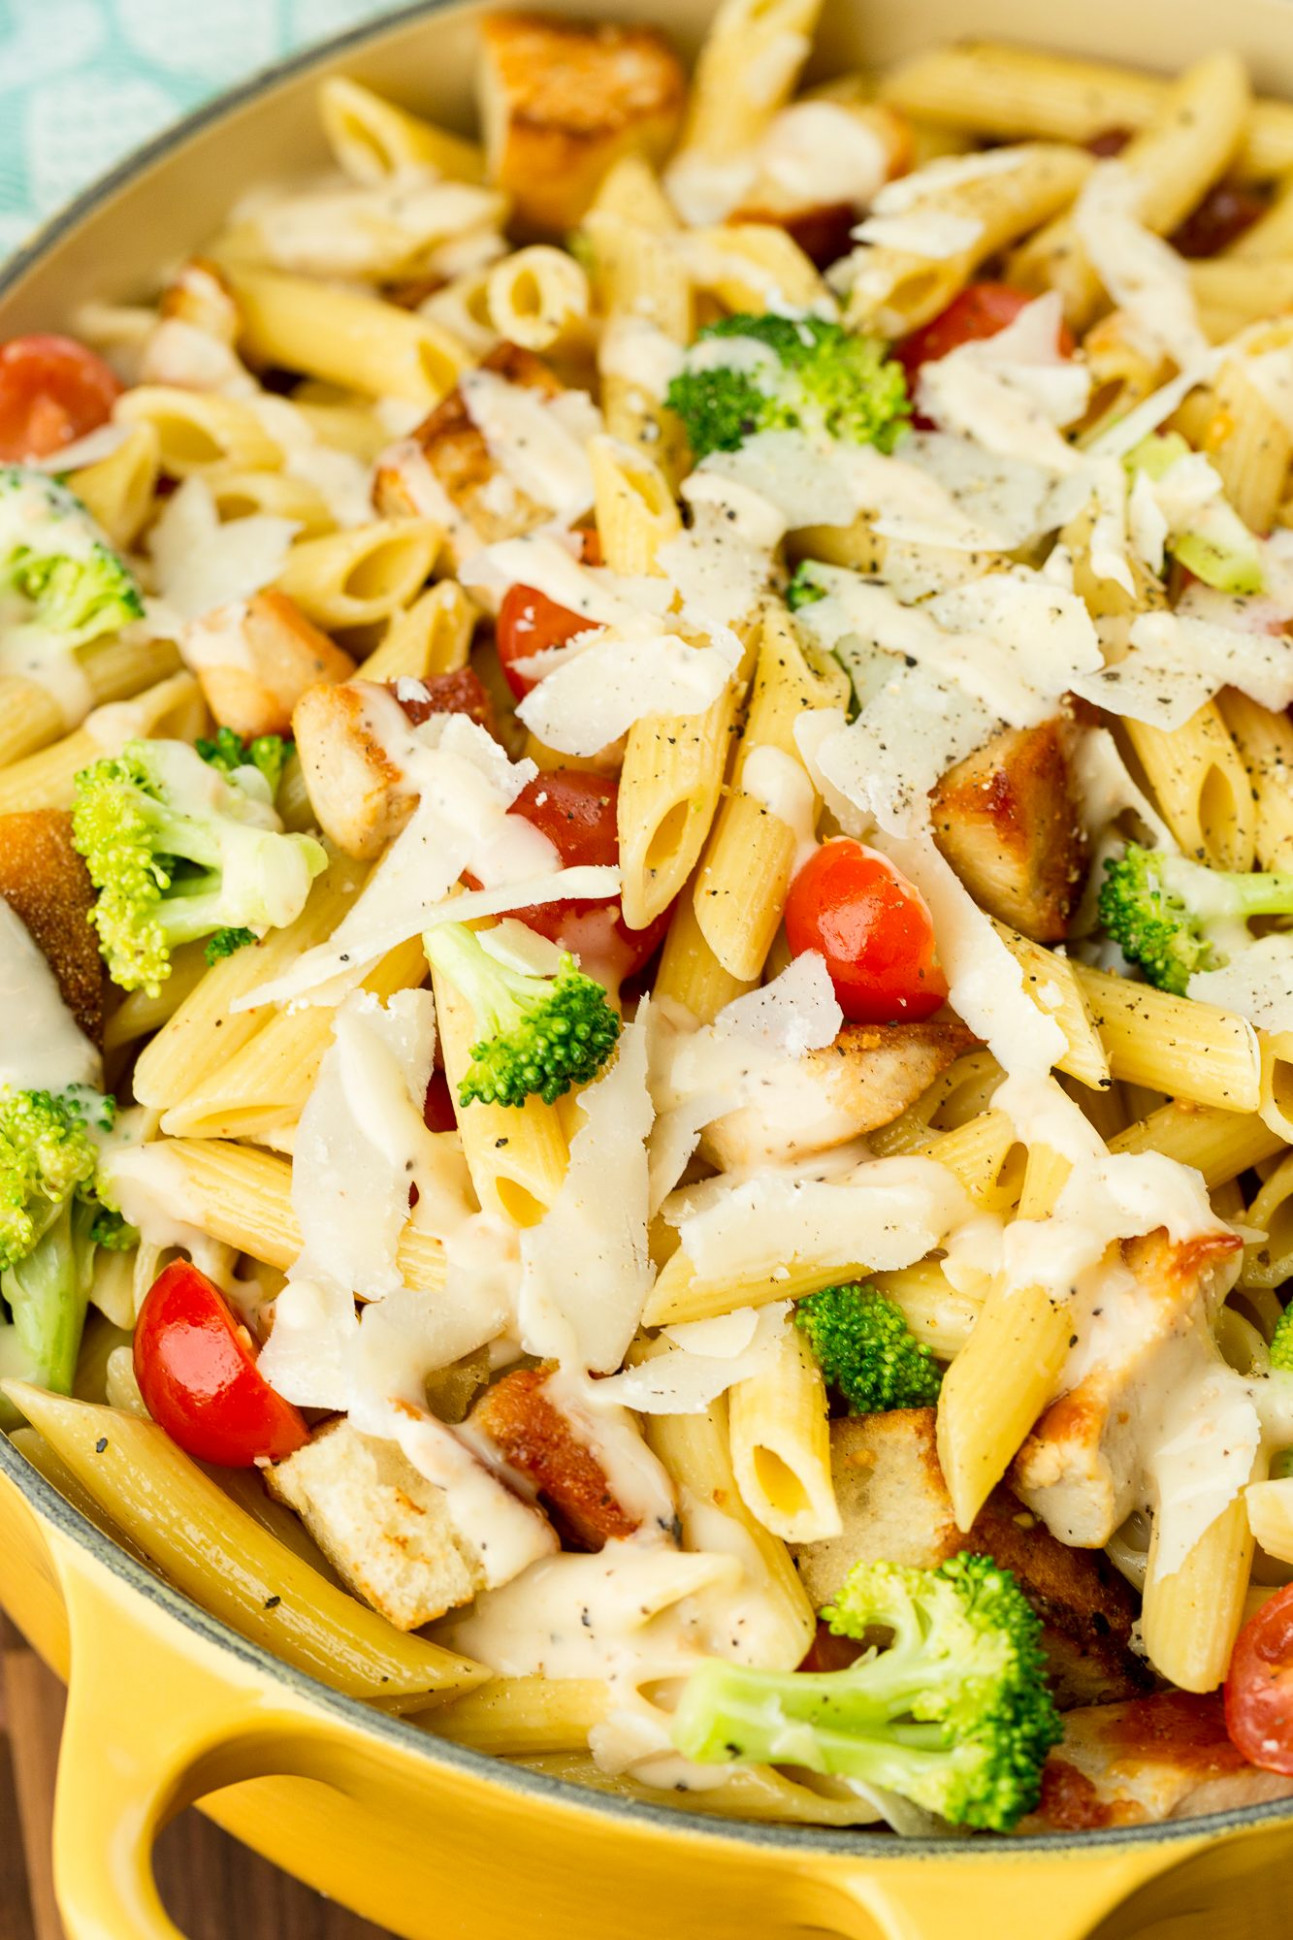 11+ Penne Pasta Recipes - Easy Ideas for Penne Pasta—Delish